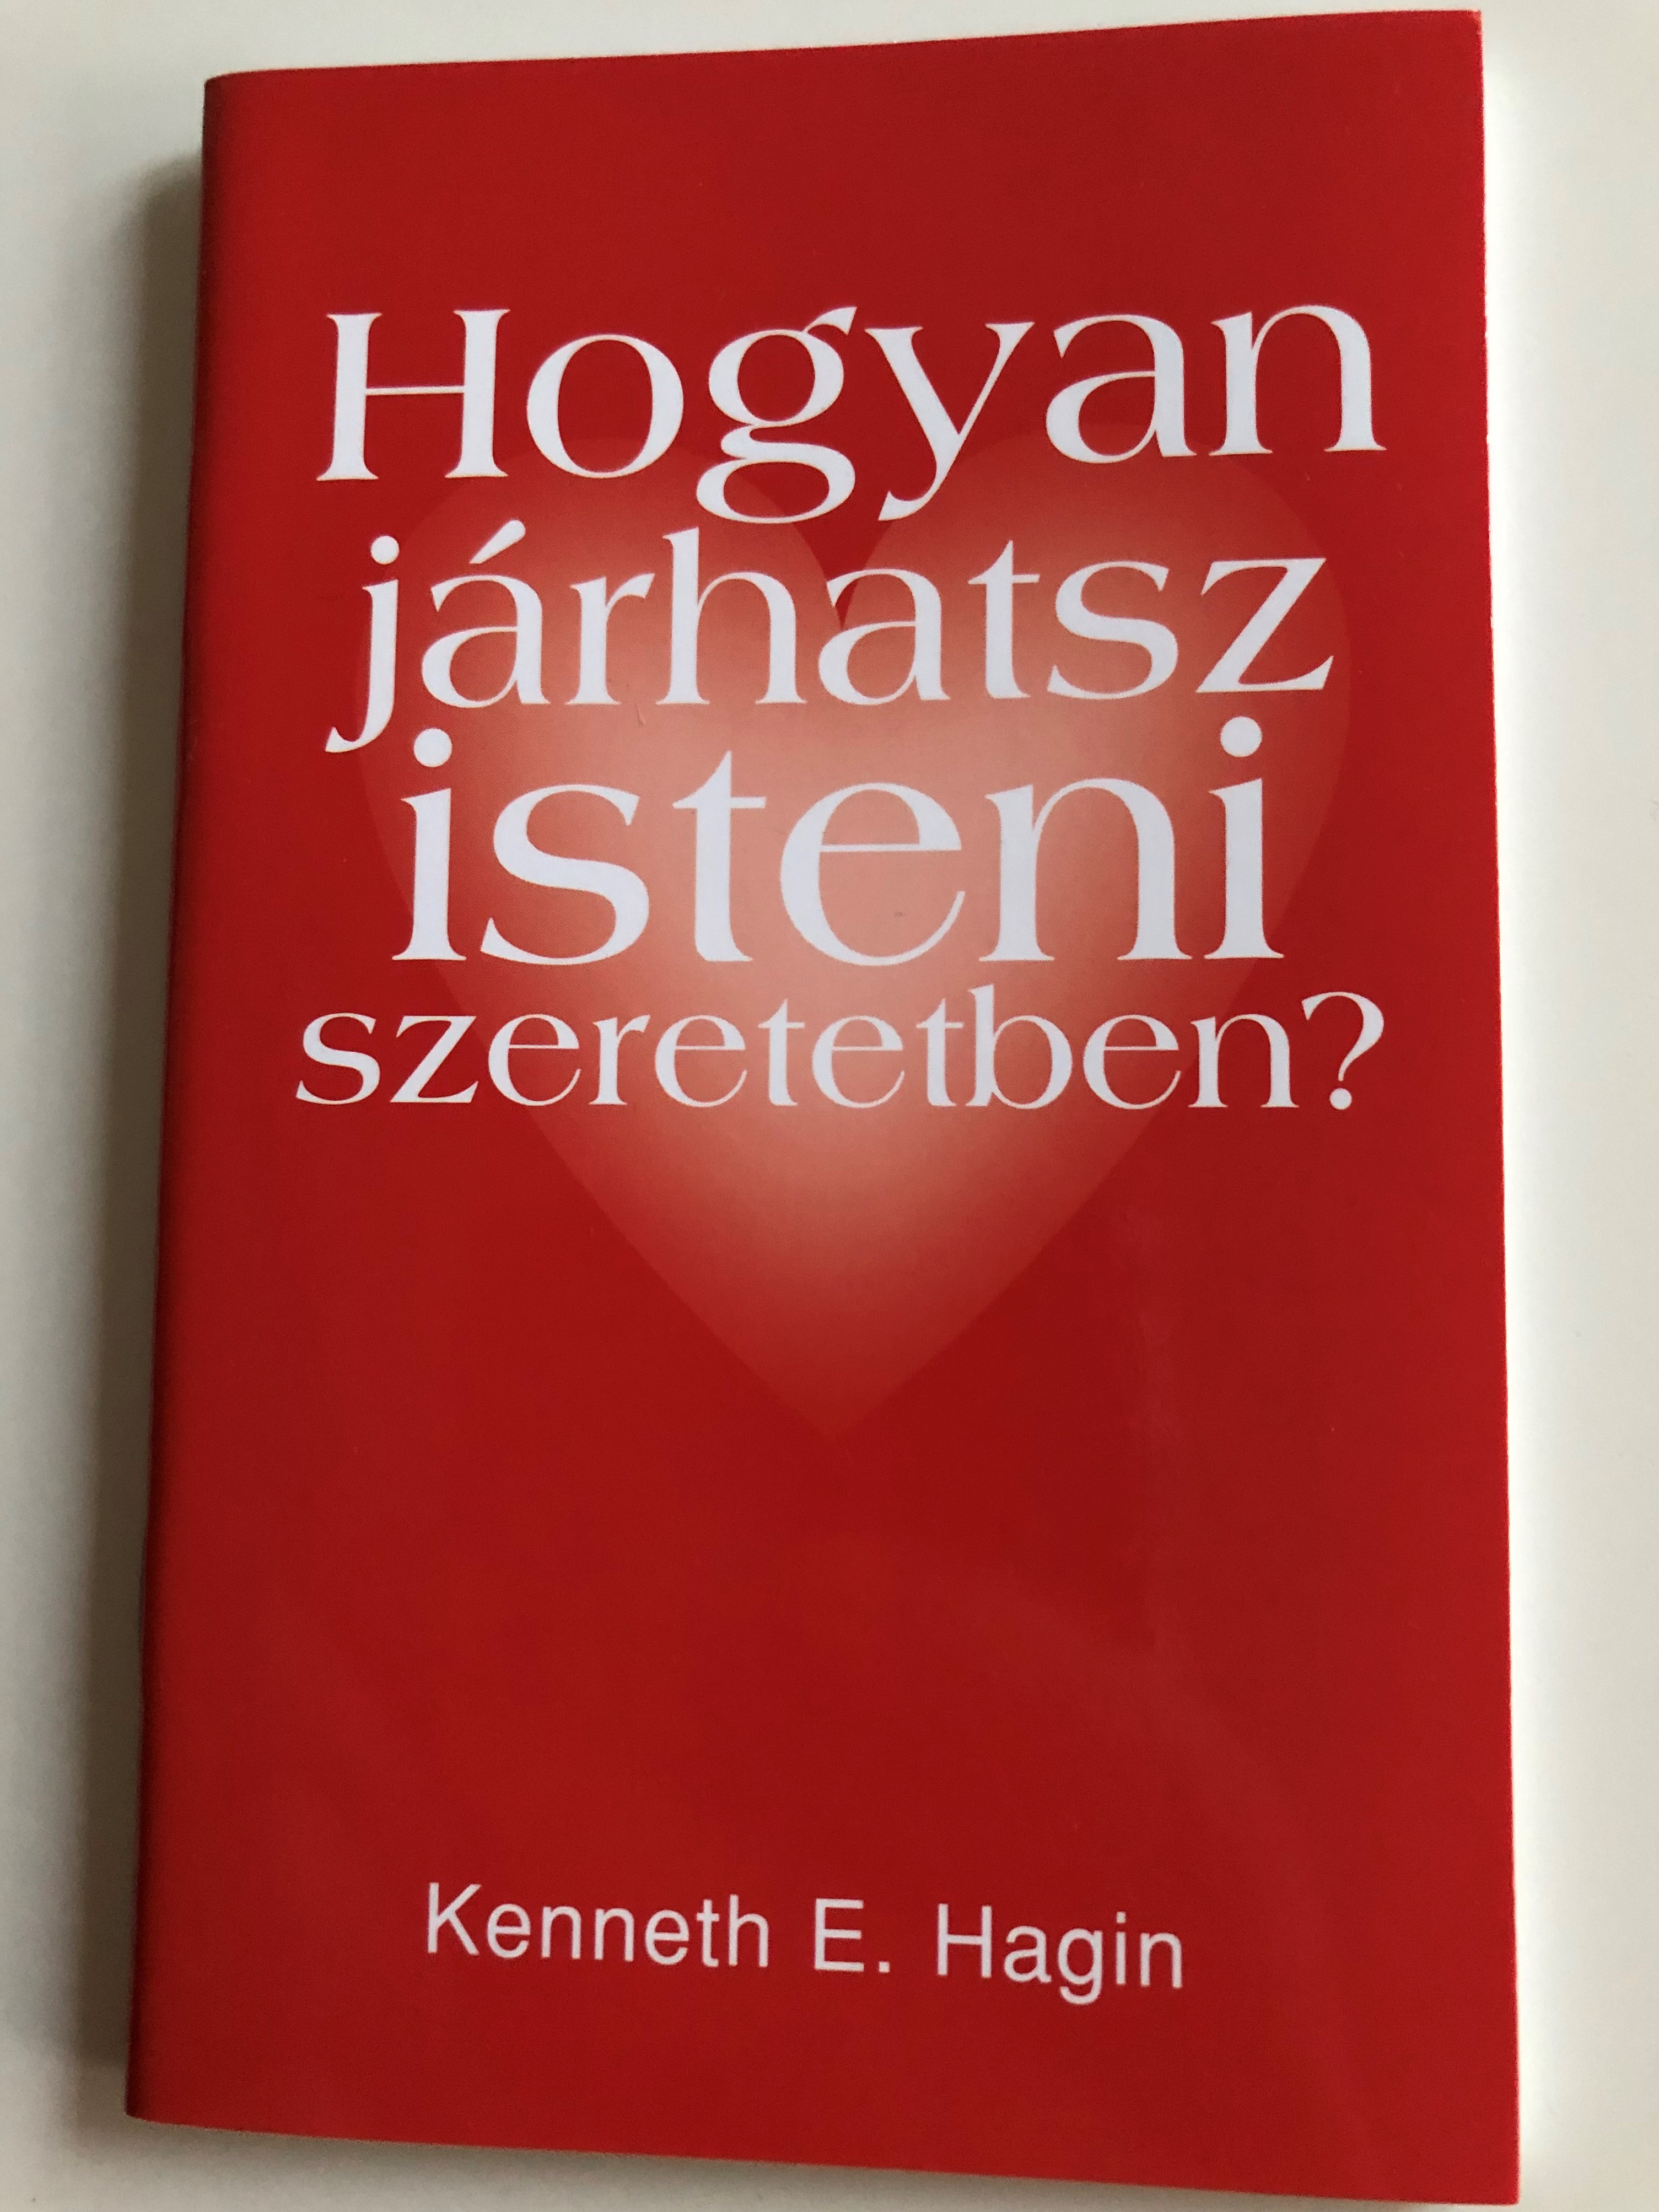 hogyan-j-rhatsz-isteni-szeretetben-by-kenneth-e.-hagin-hungarian-edition-of-how-to-walk-in-love-1-.jpg